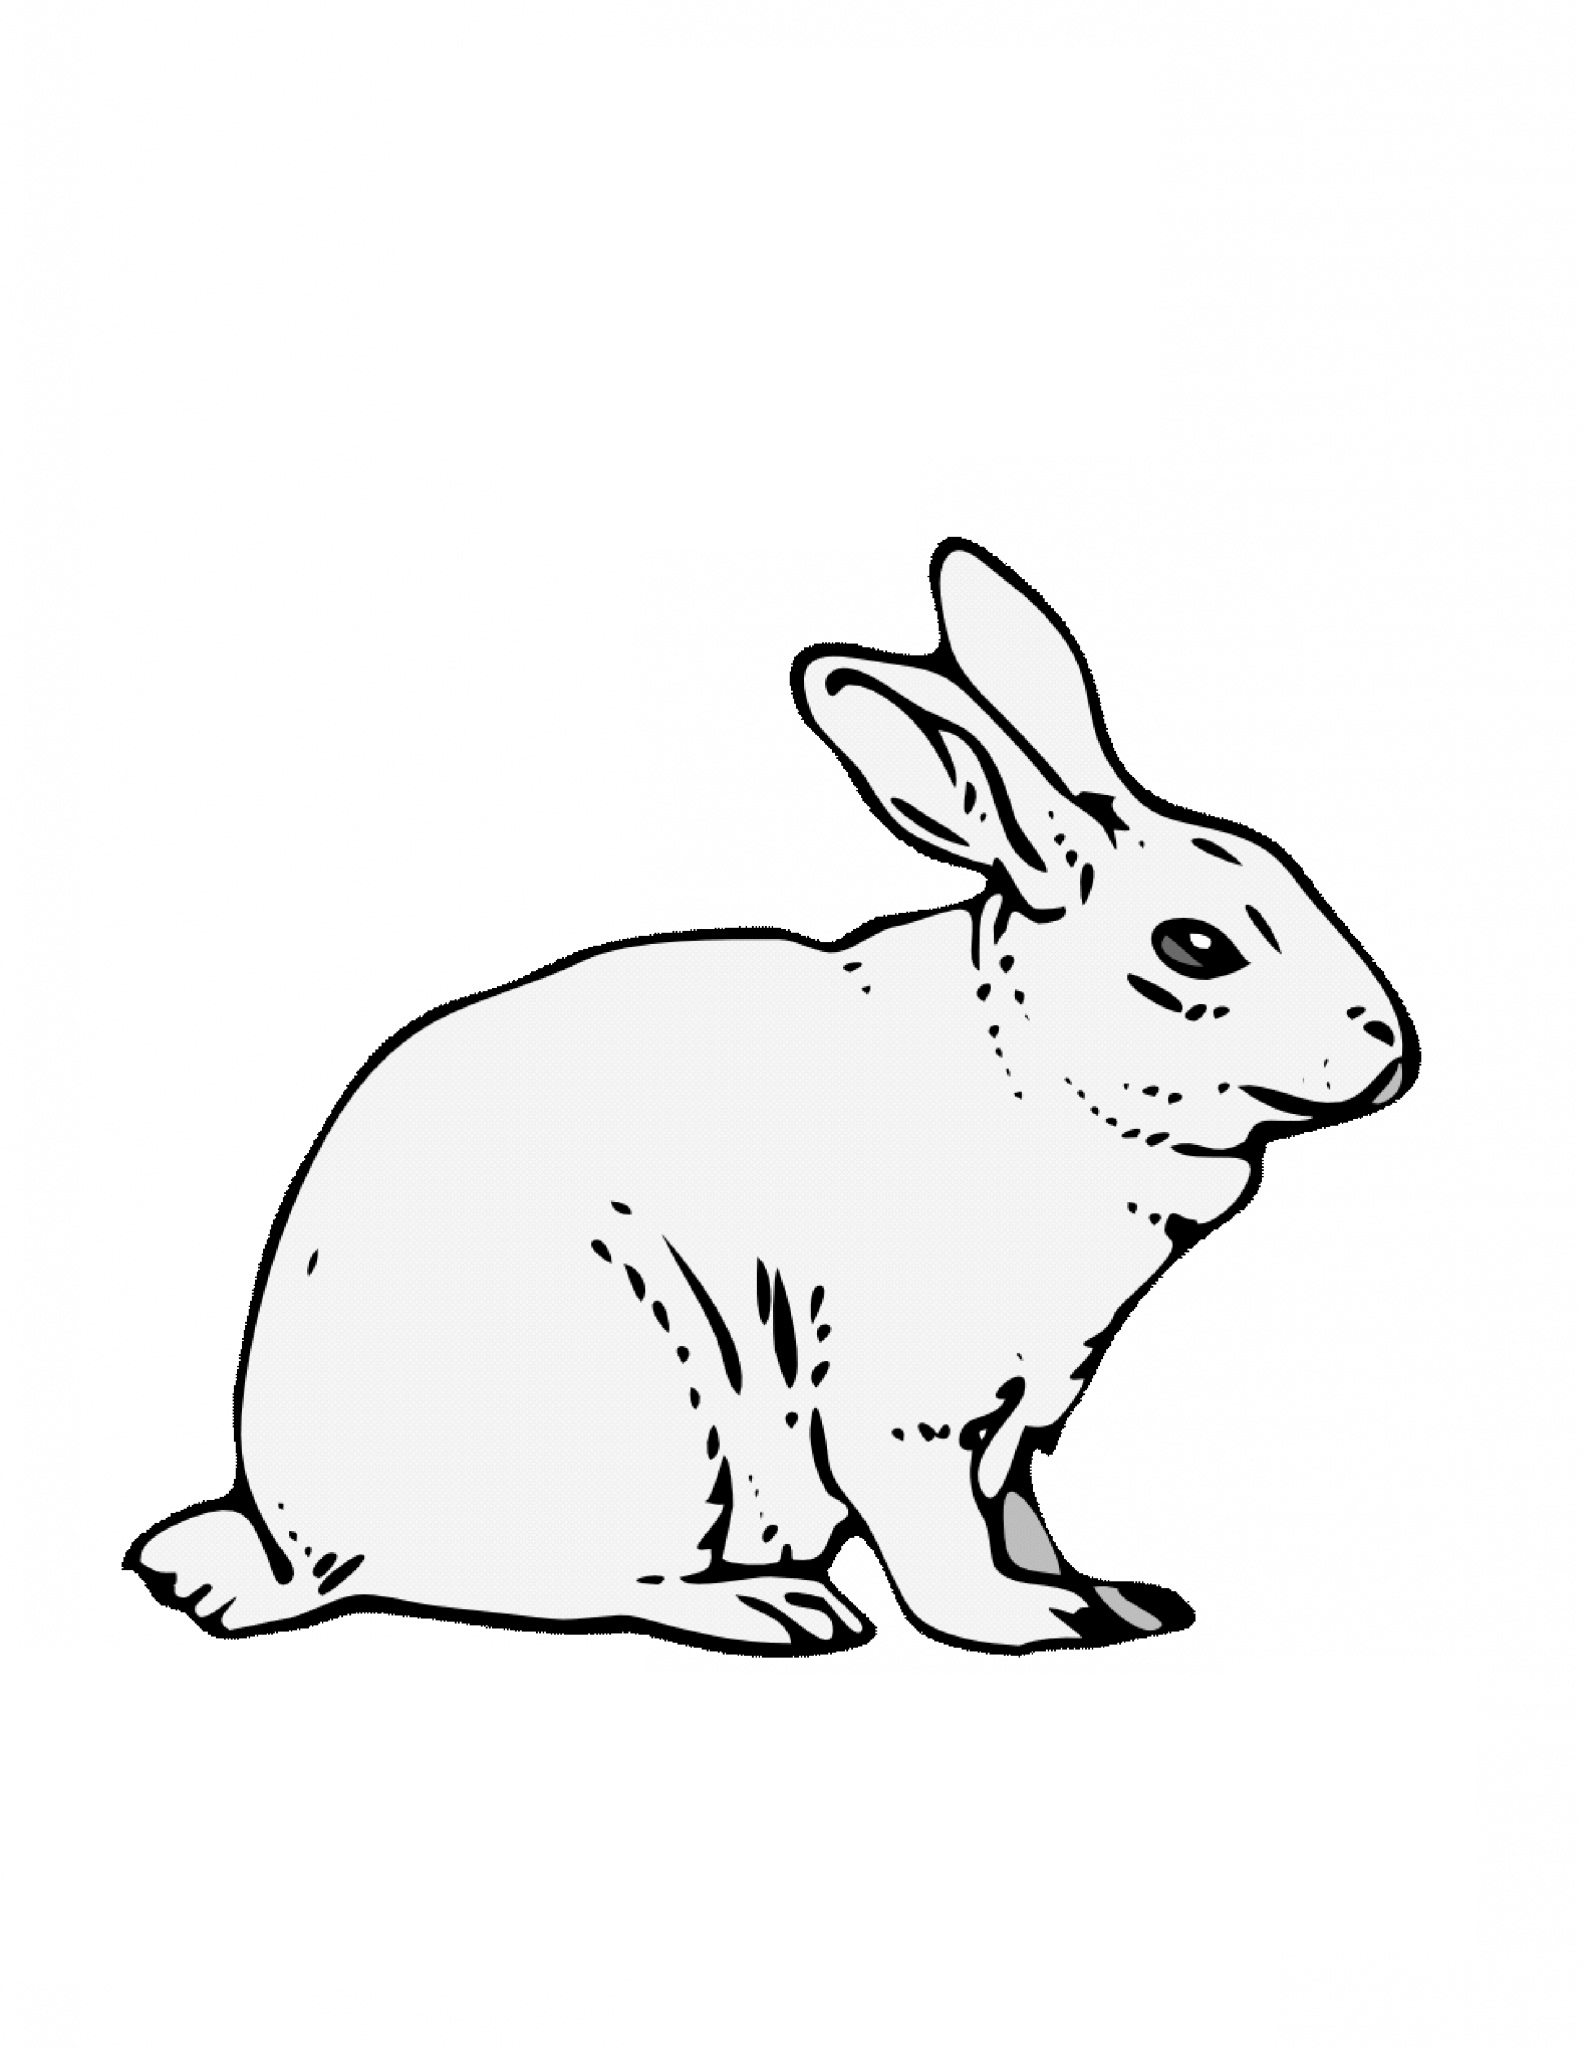 coloring pages rabbit - photo#27